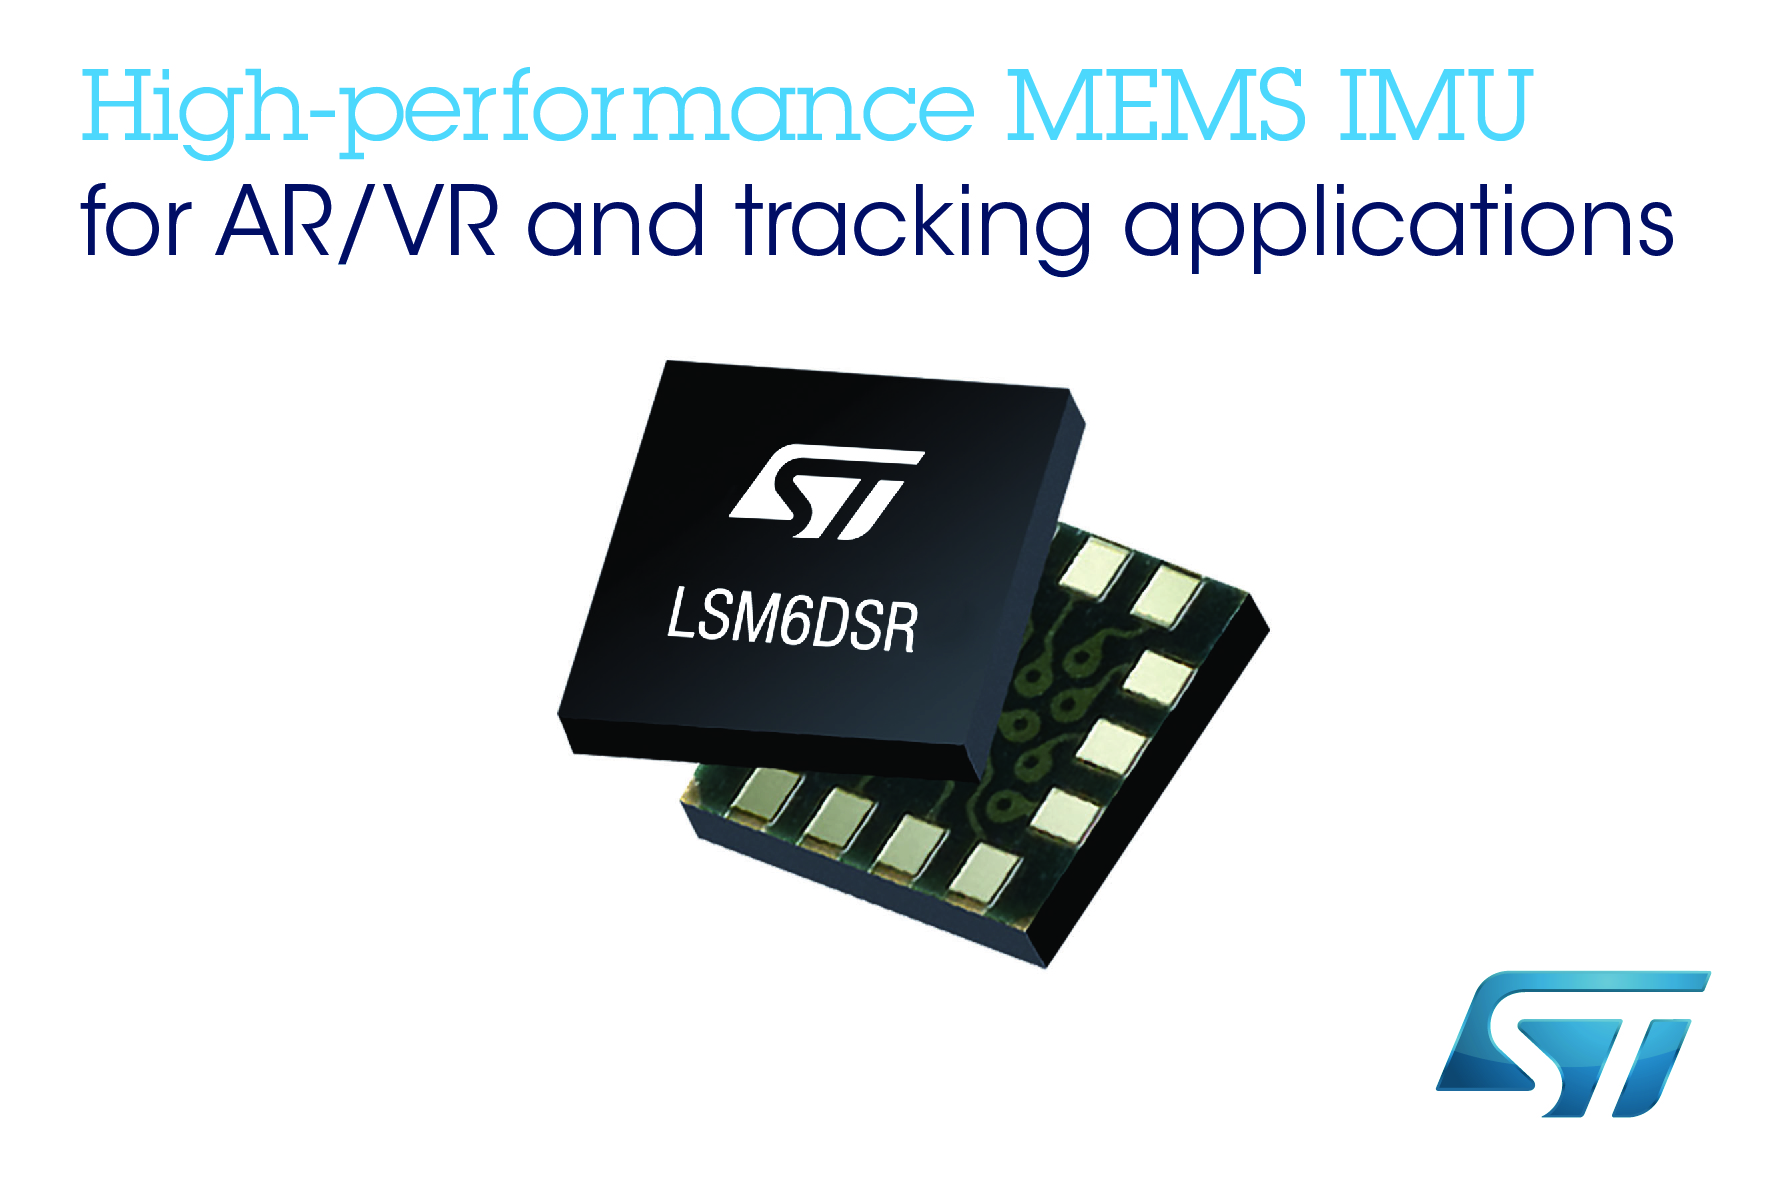 Stmicroelectronics launches high-performance MEMS inertial modules